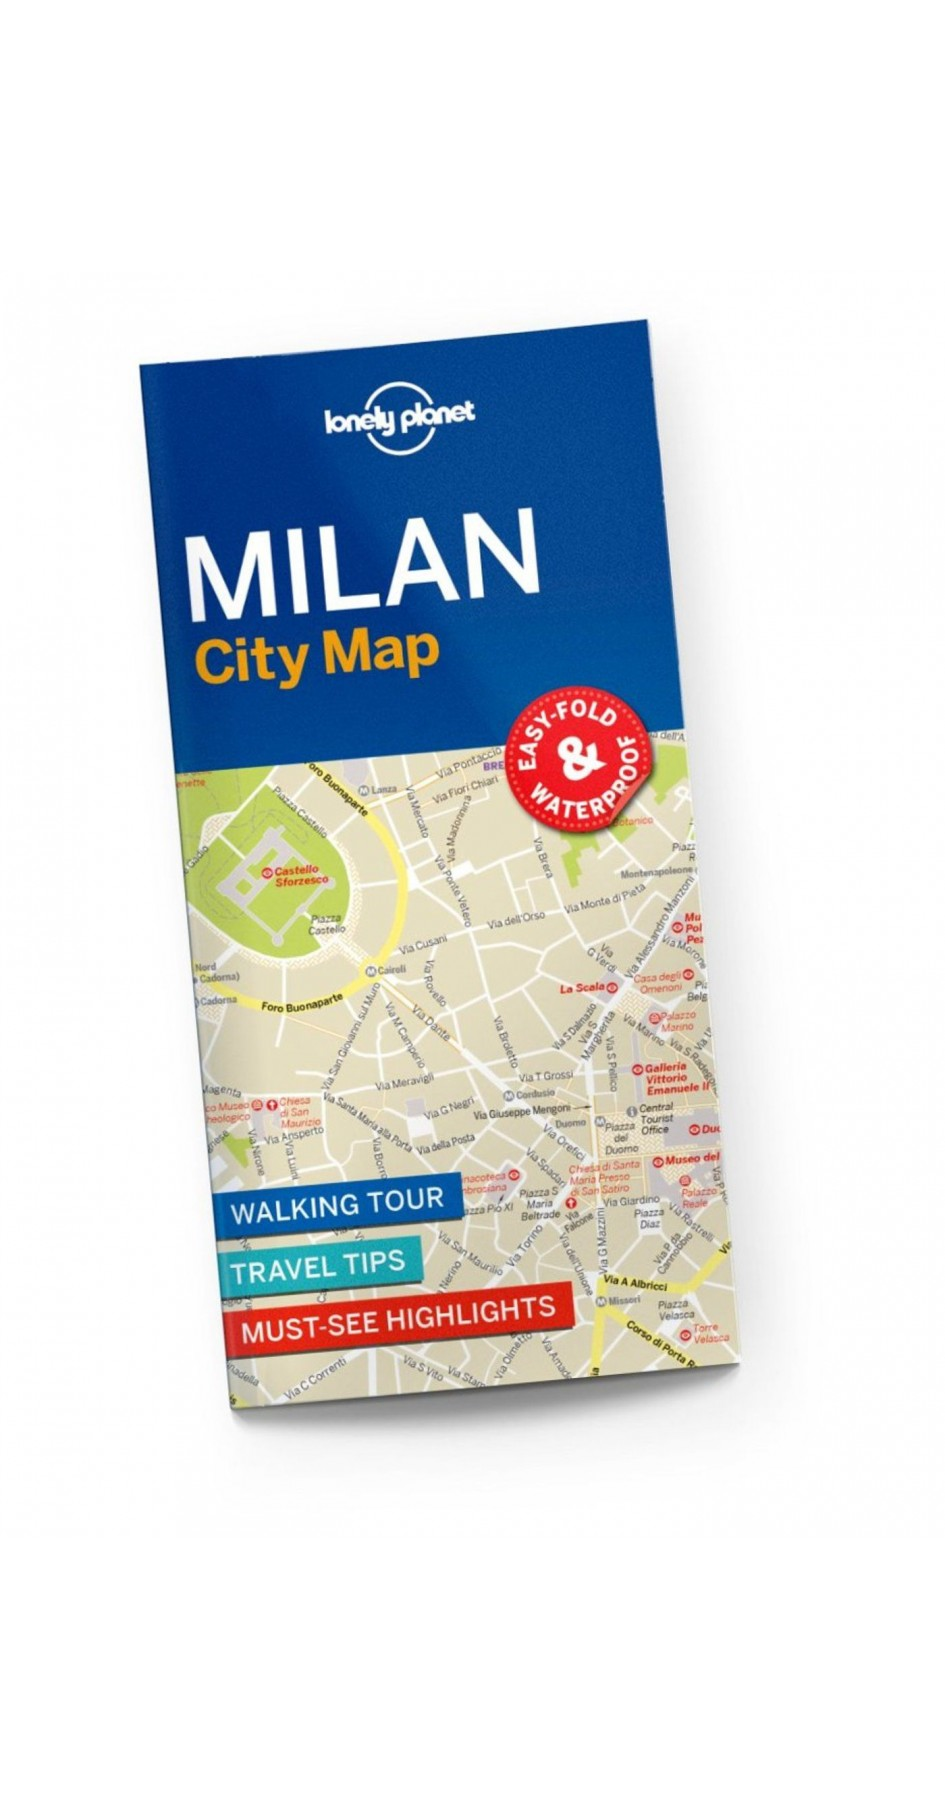 Milan City Map | Lonely Planet